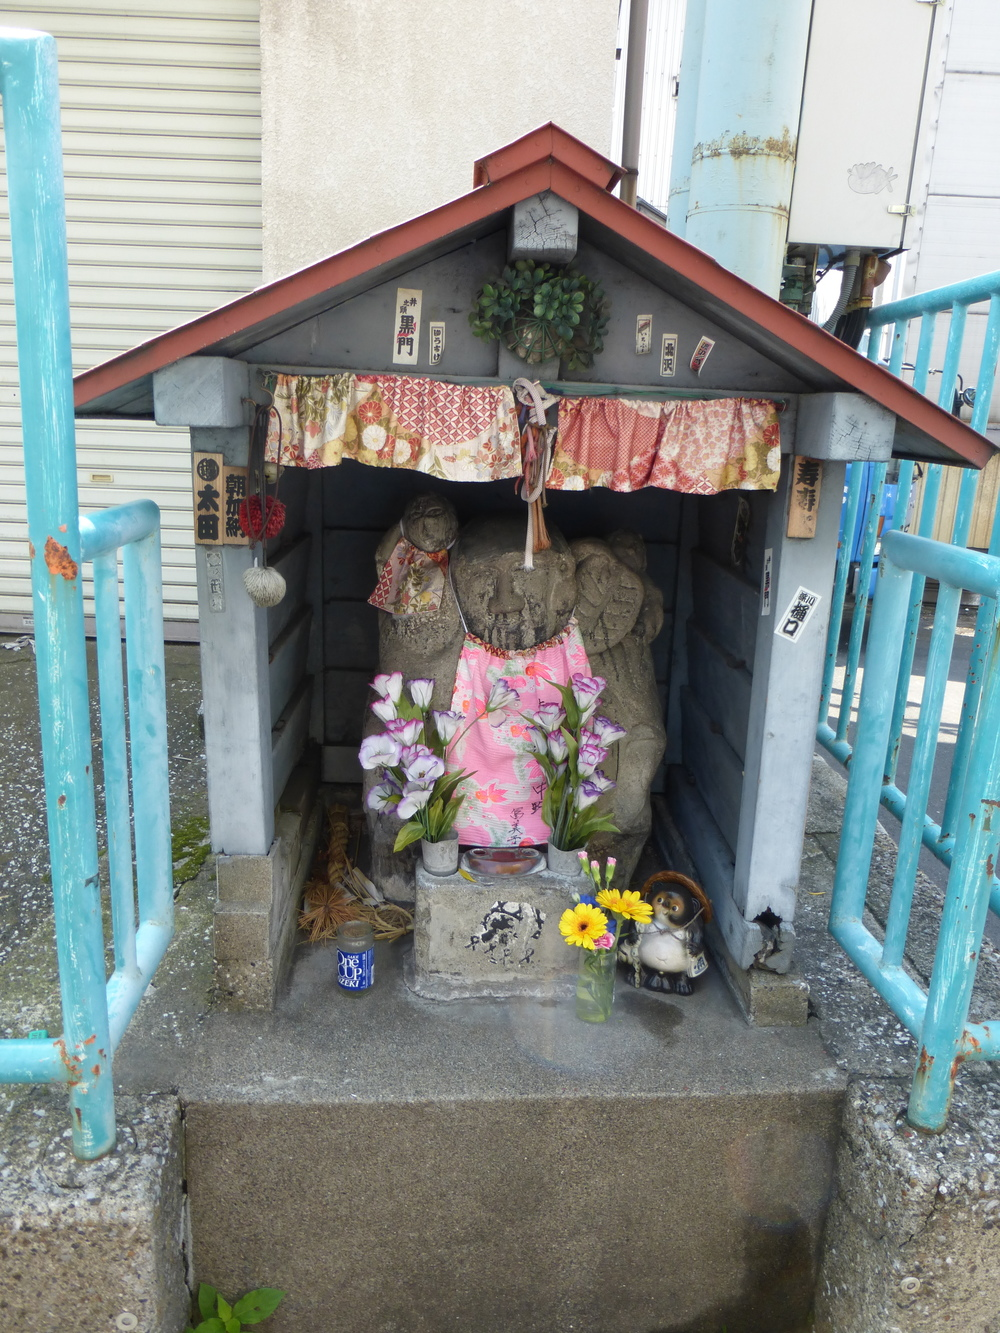 This is a picture of a good luck shrine that the fishermen touch as they go out to sea or to sell their fish for the day.    They have a lot of shrines and burn incense to get good luck here.